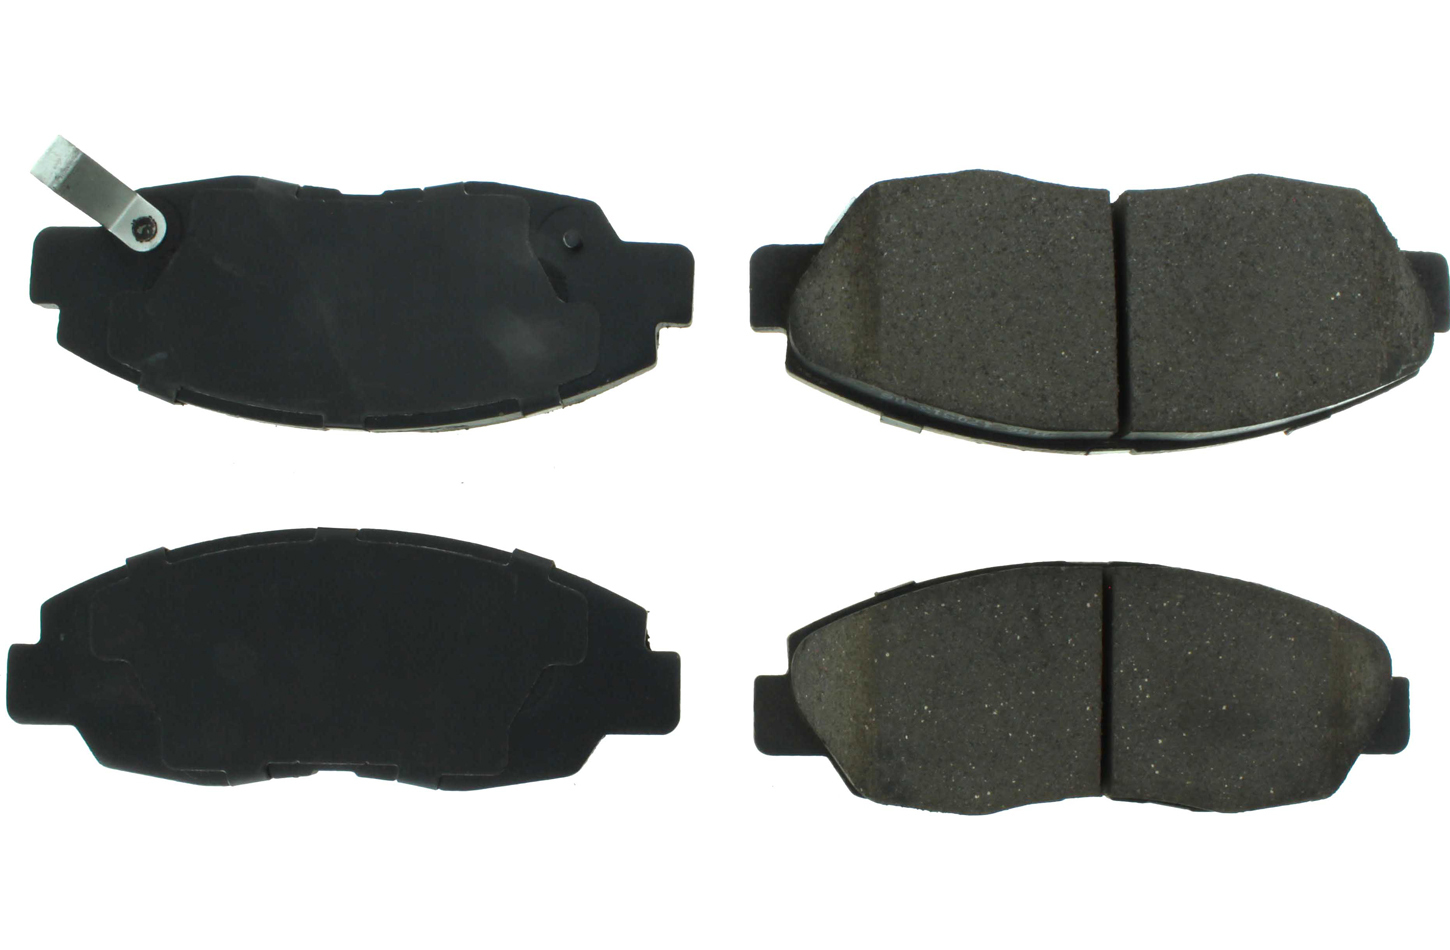 Posi-Quiet Ceramic Brake Pads with Shims and Har